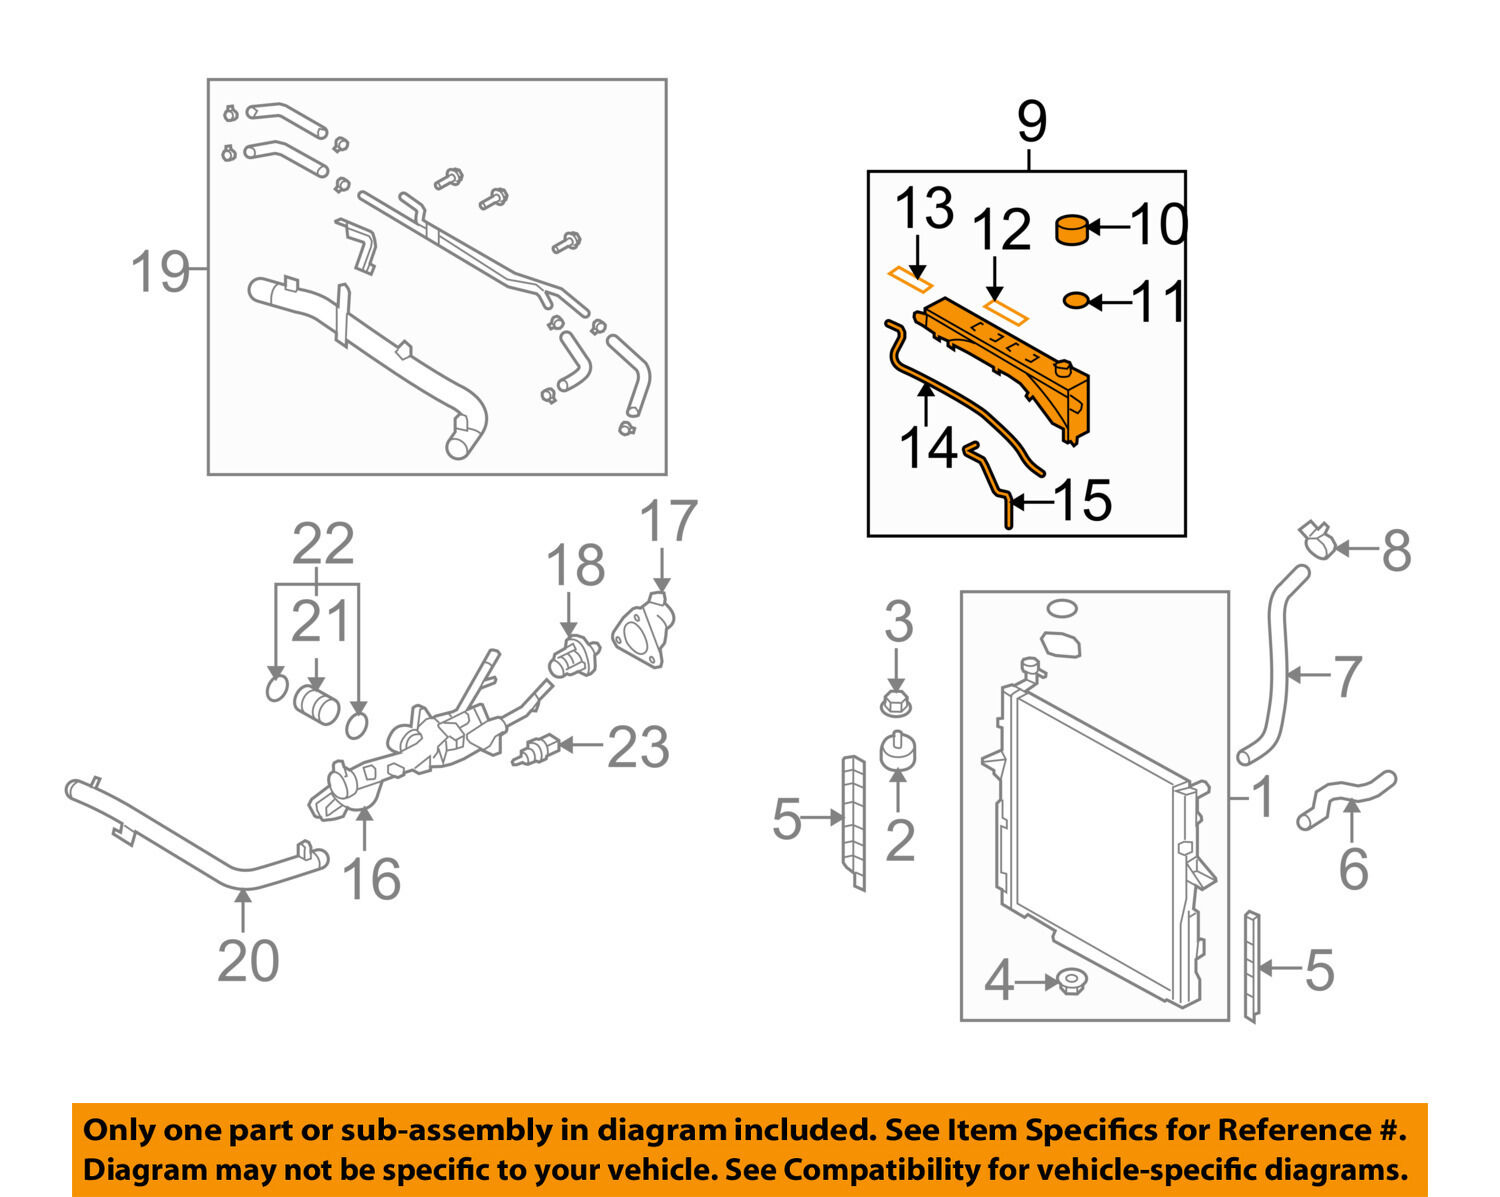 Kia Sorento Radiator Diagram 28 Wiring Images 2003 Lx I Have A S L1600 Oem 07 09 Coolant Overflow Tank Recovery